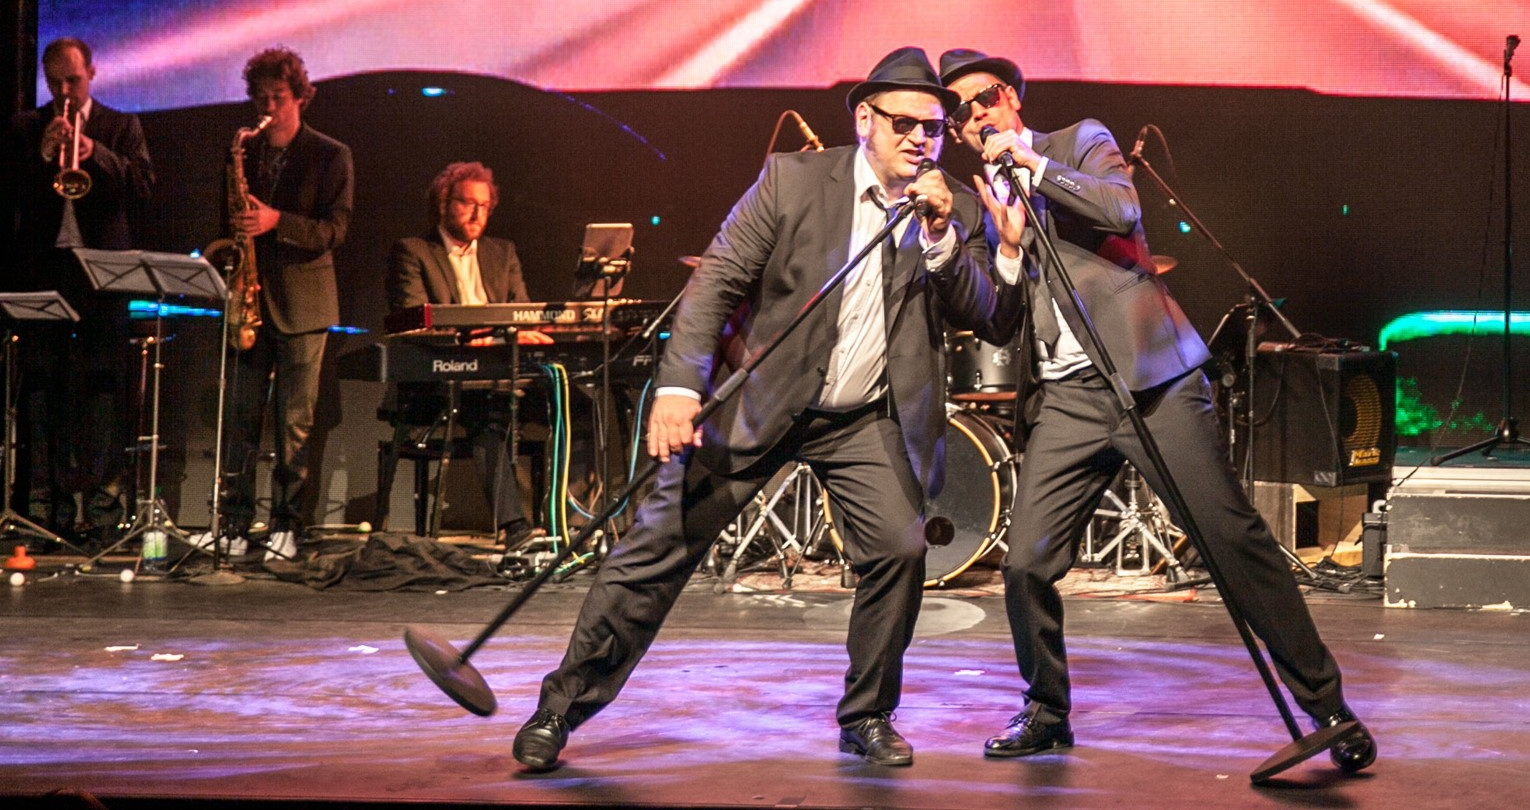 20190321_H_A Tribute to the Blues Brothers 3_c_Philipp Moenckert-web.jpg